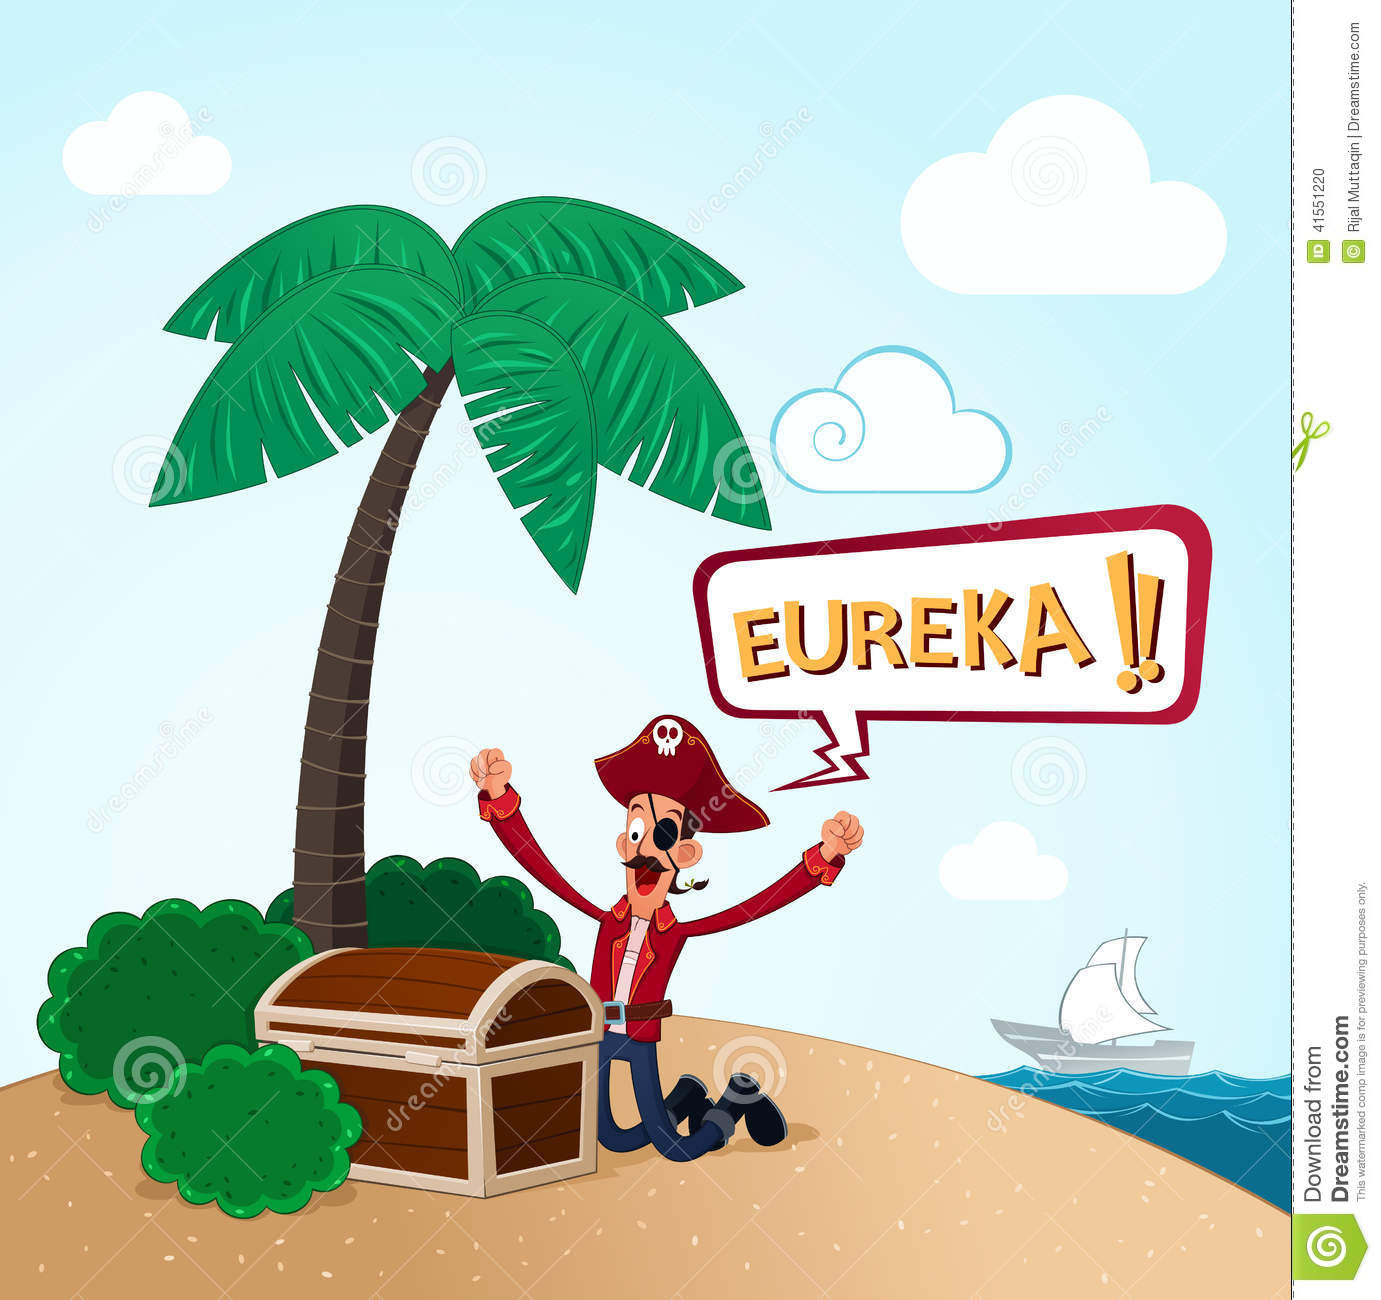 Pirate discover an island stock vector. Illustration of journey.